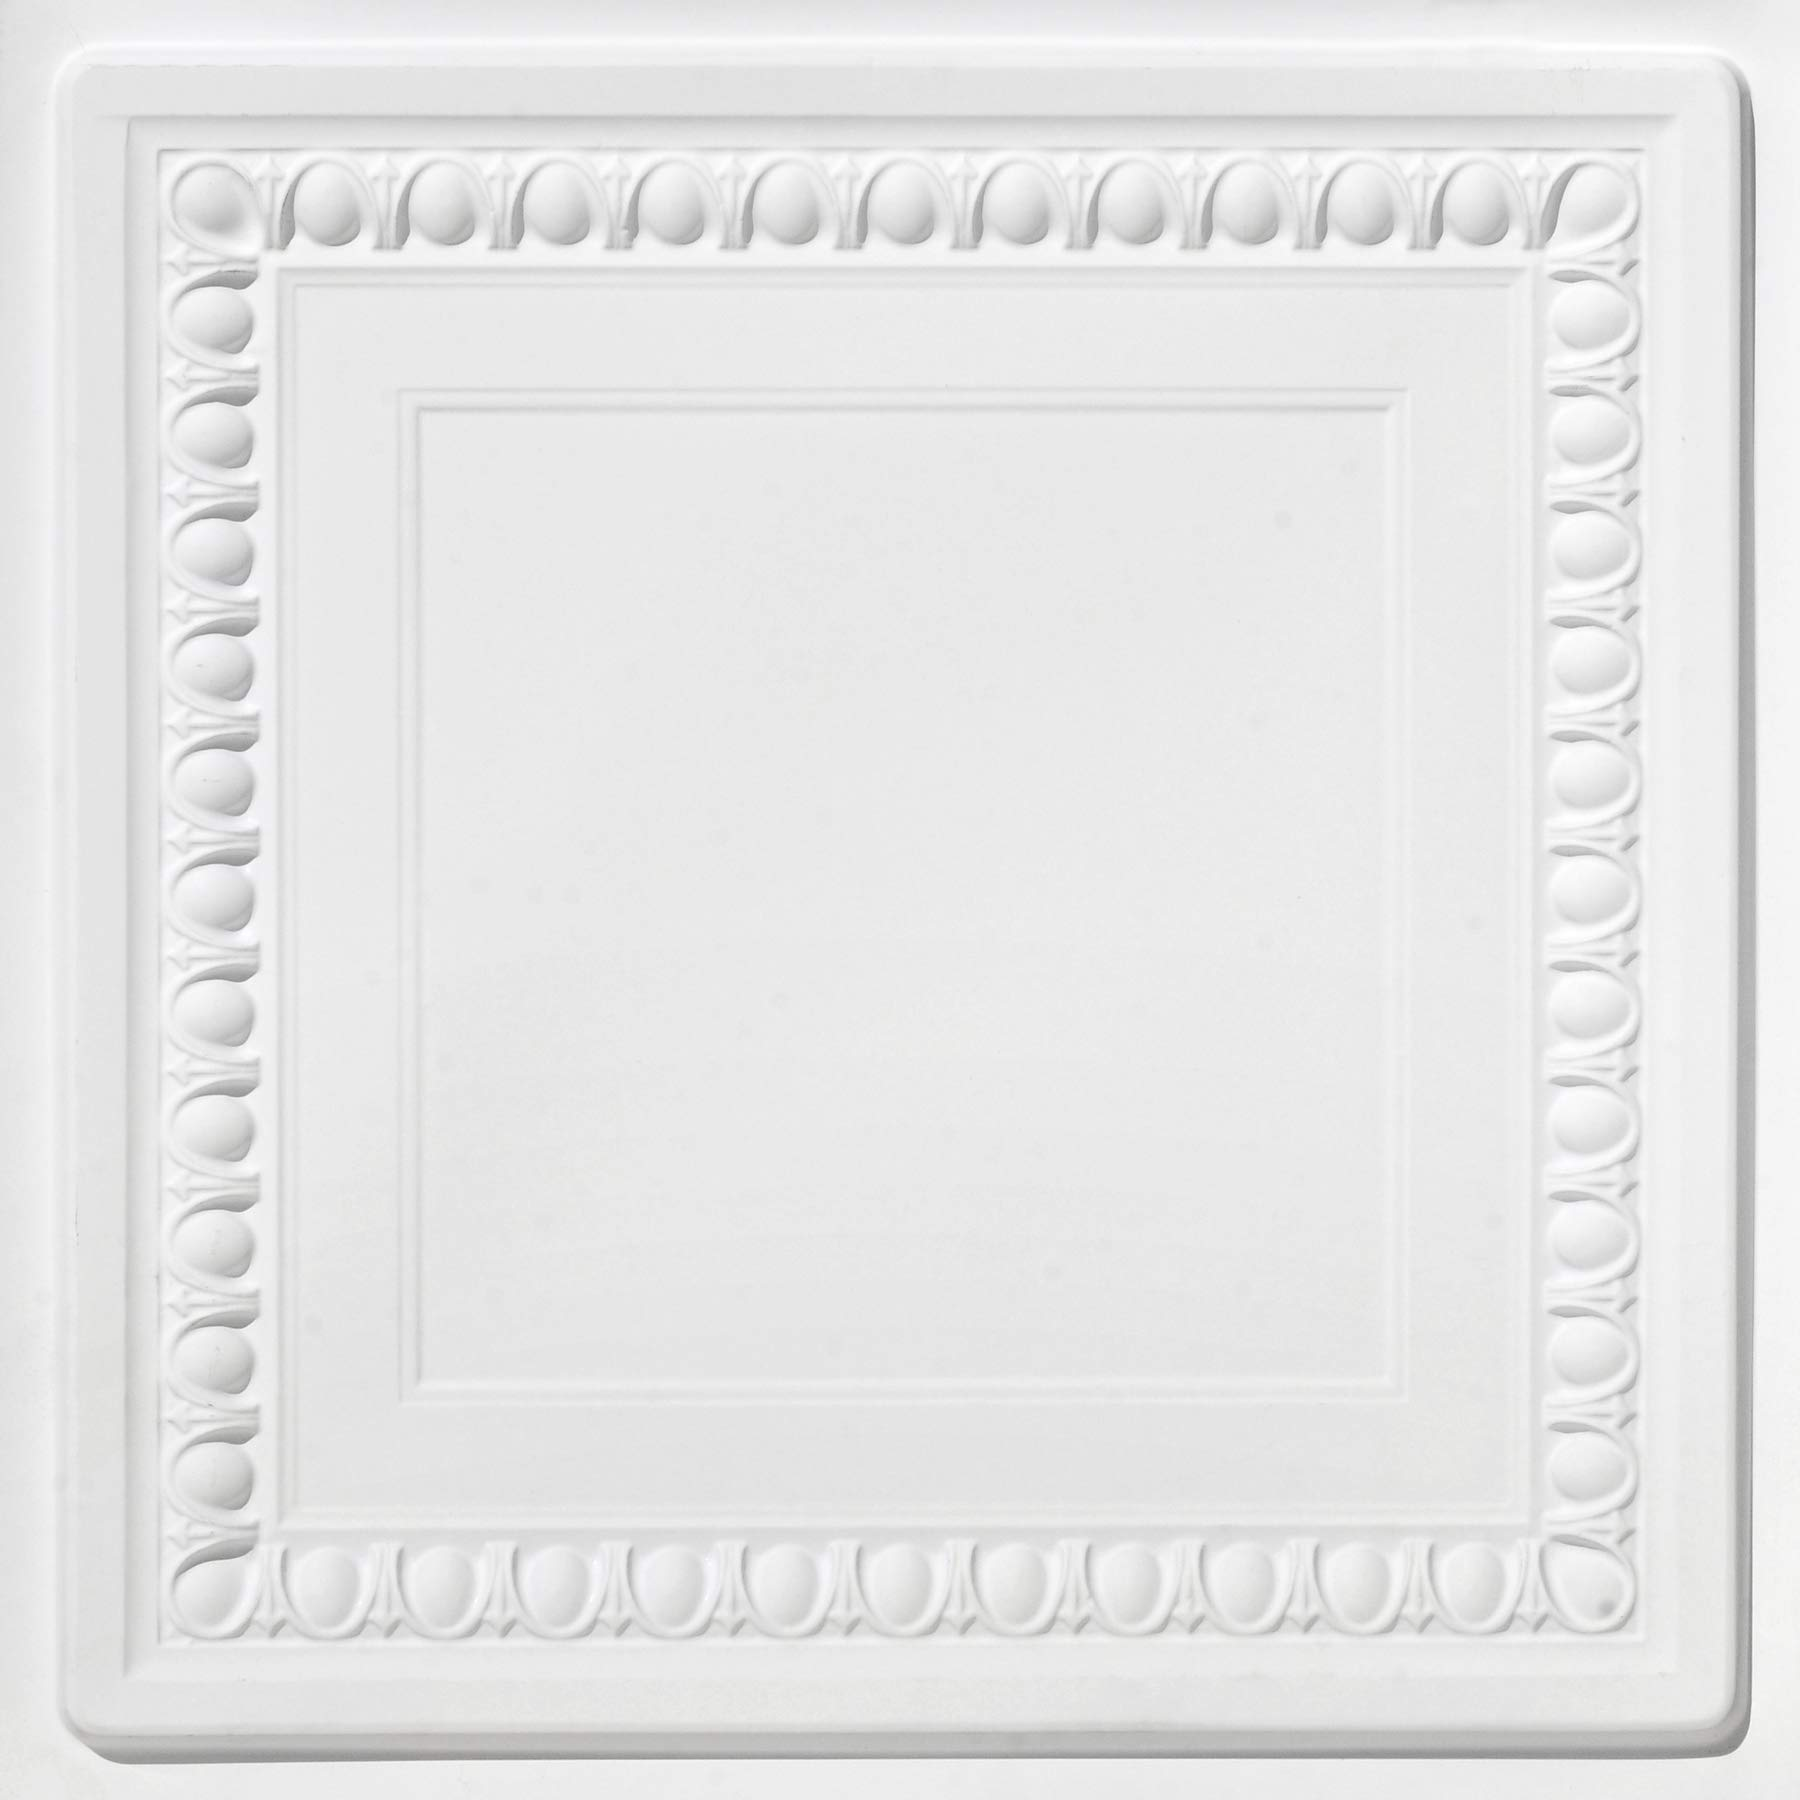 From Plain To Beautiful In Hours DCT06wm-24x24-25 Cambridge Ceiling Tile White Matte 25